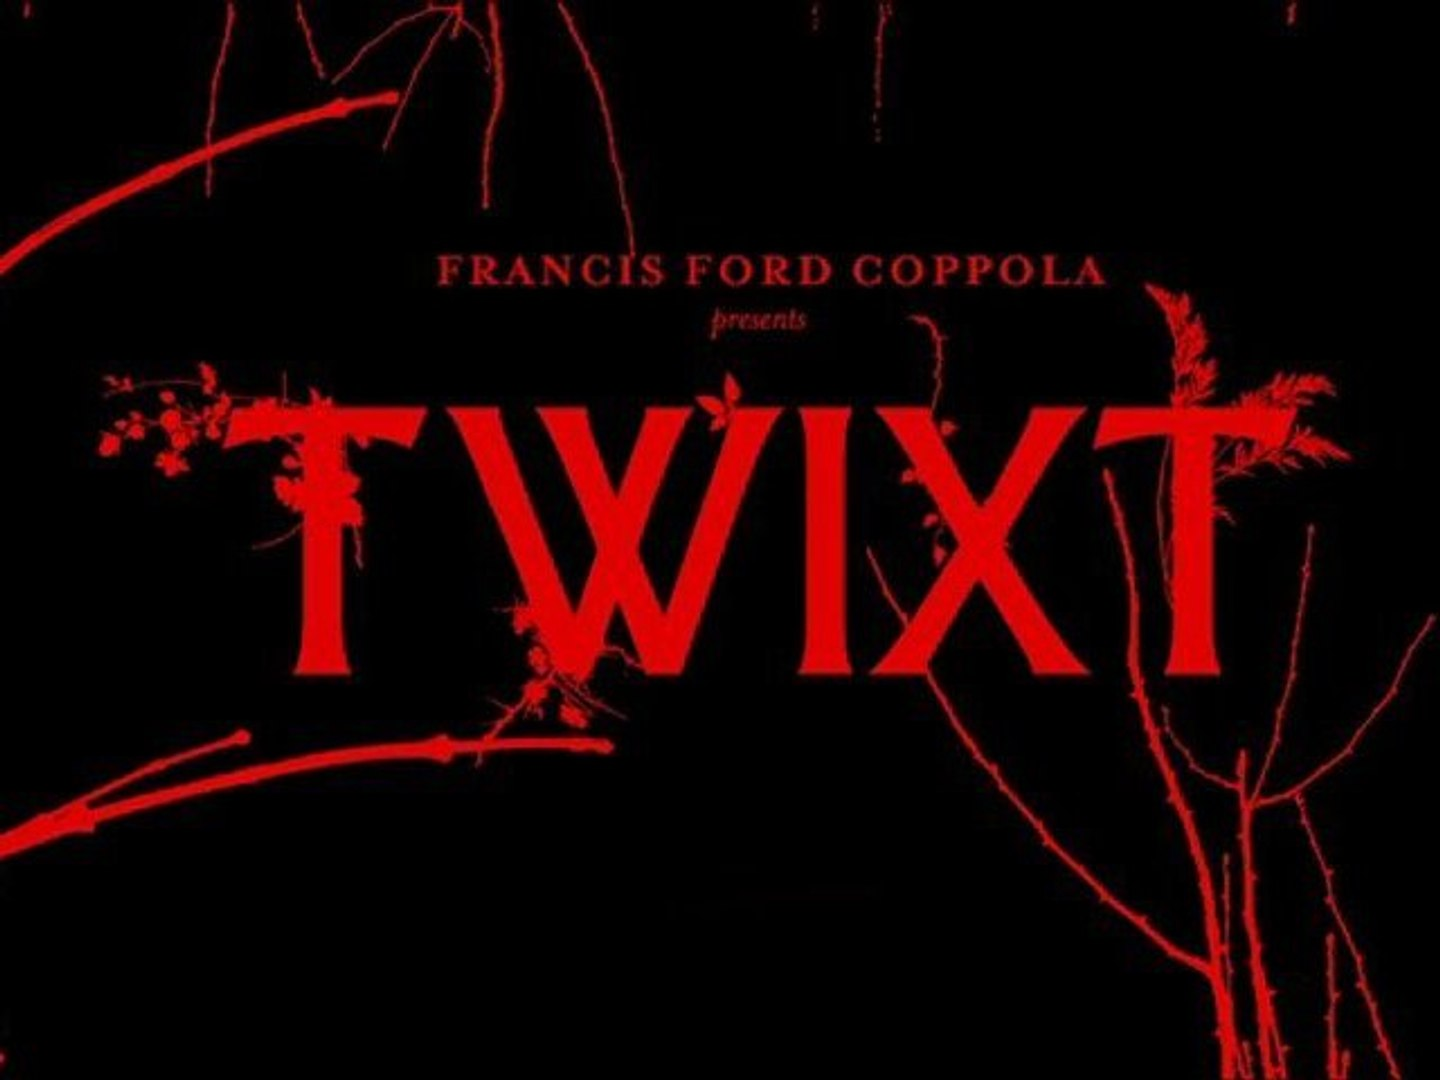 TWIXT -  Francis Ford Coppola Trailer / Bande-Annonce [VO|HD]